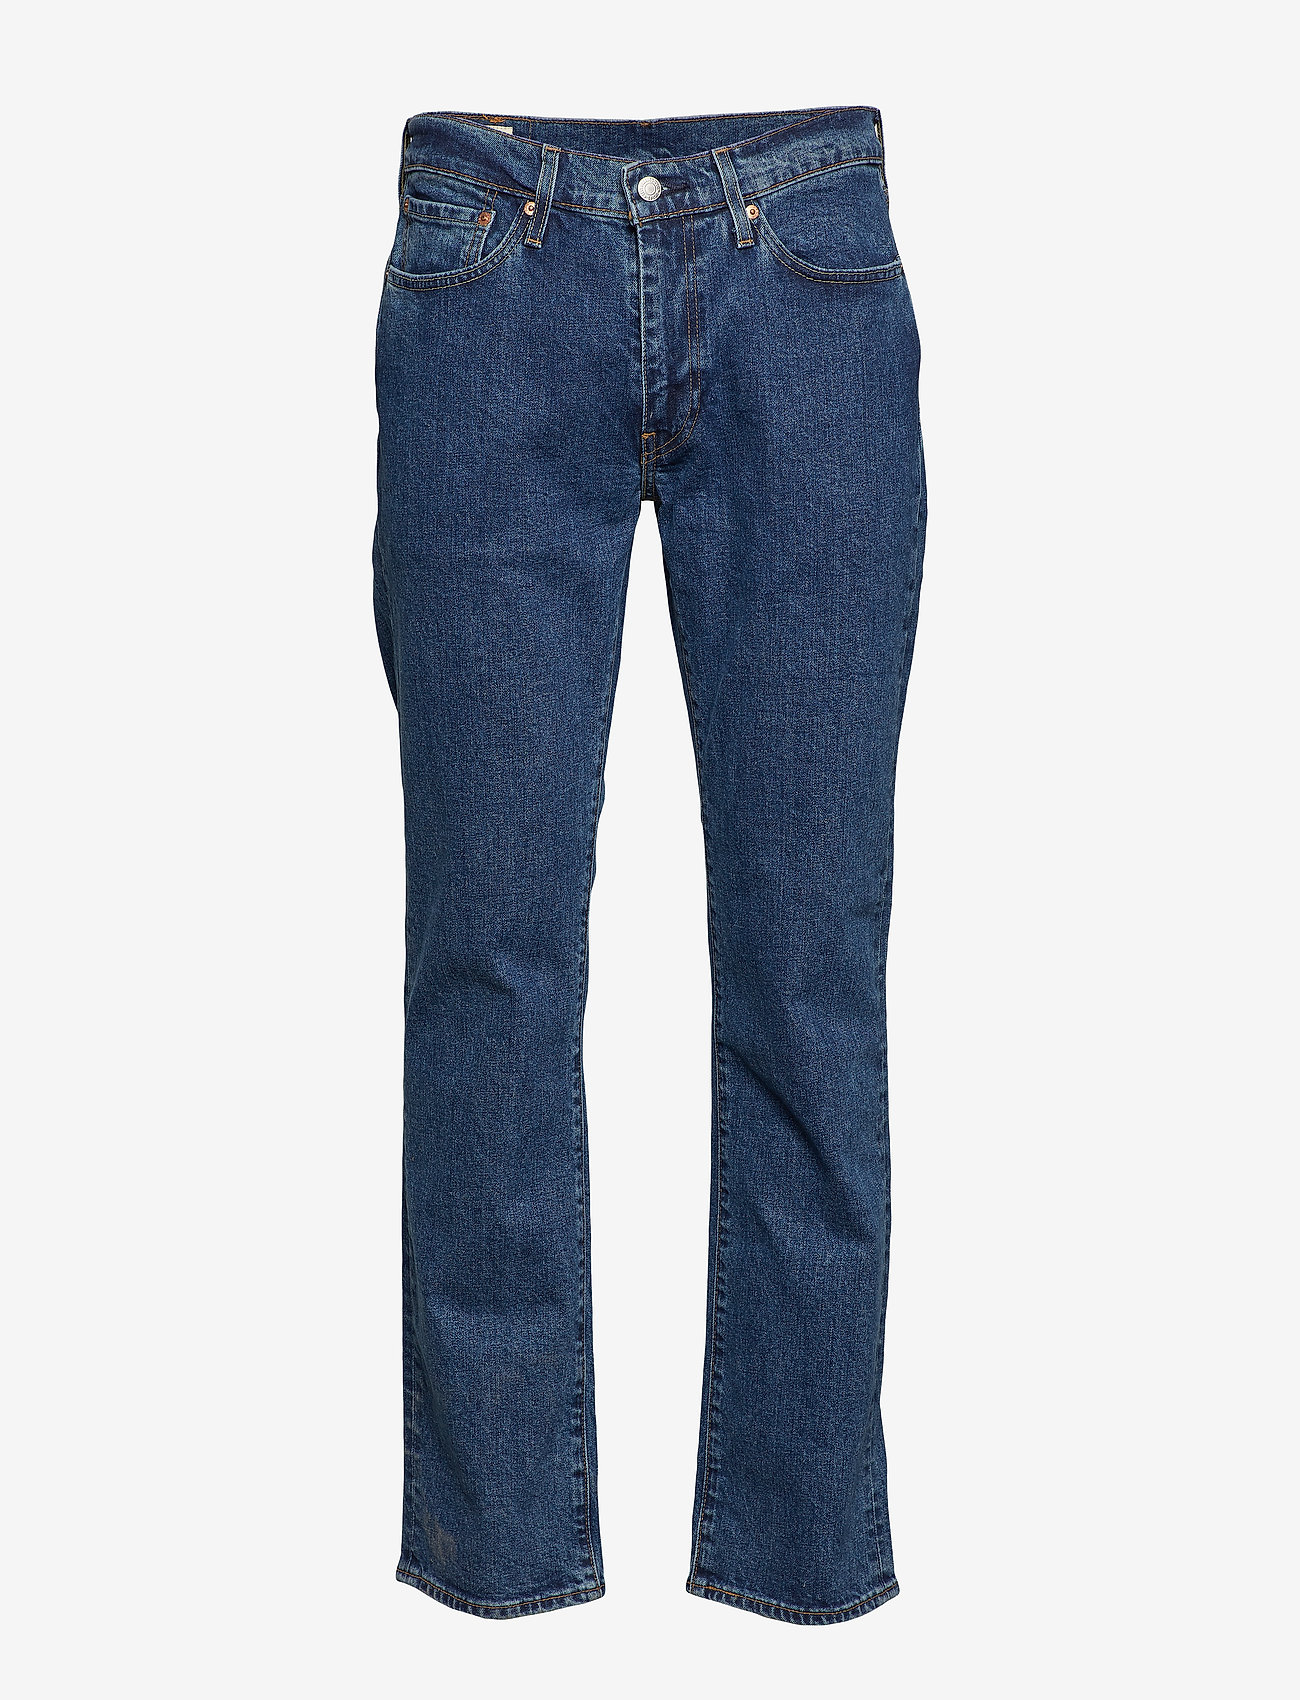 LEVI´S Men - 514 STRAIGHT STONEWASH STRETCH - regular jeans - med indigo - flat finish - 1